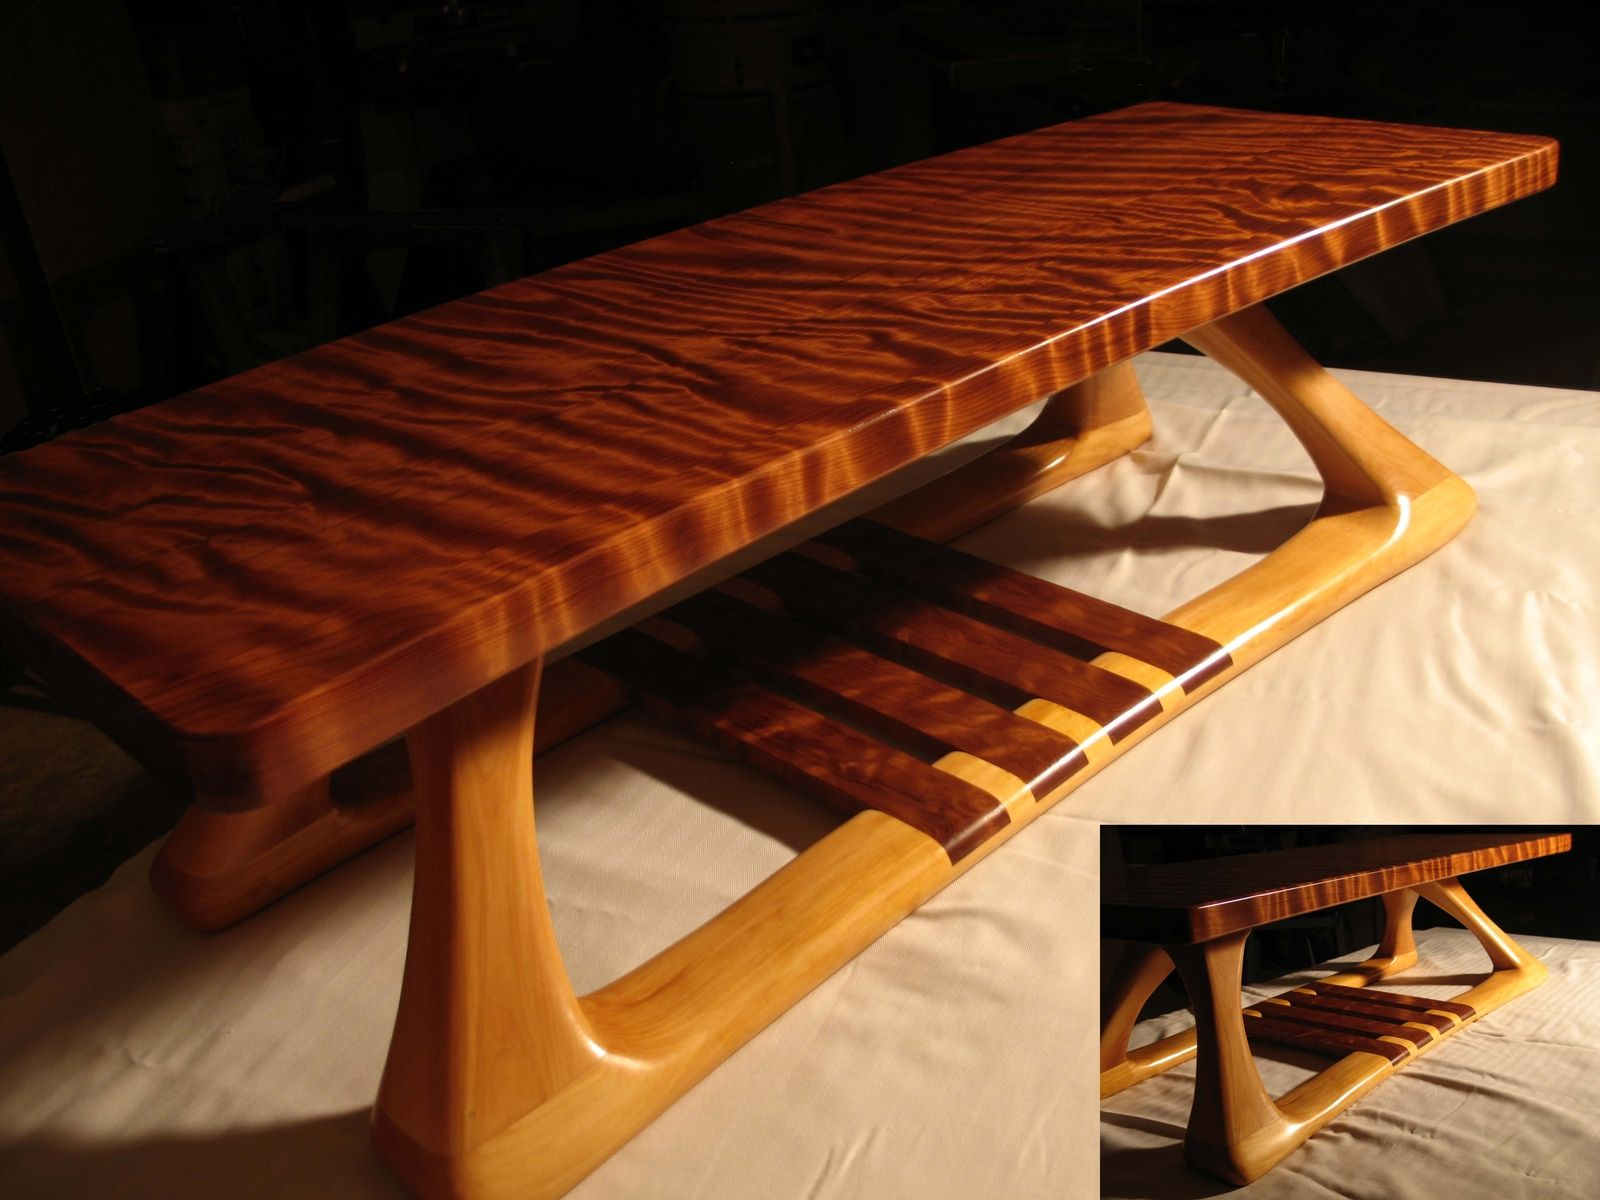 Hand Crafted Curly Redwood And Basswood Coffee Table By Daffinrud Arts